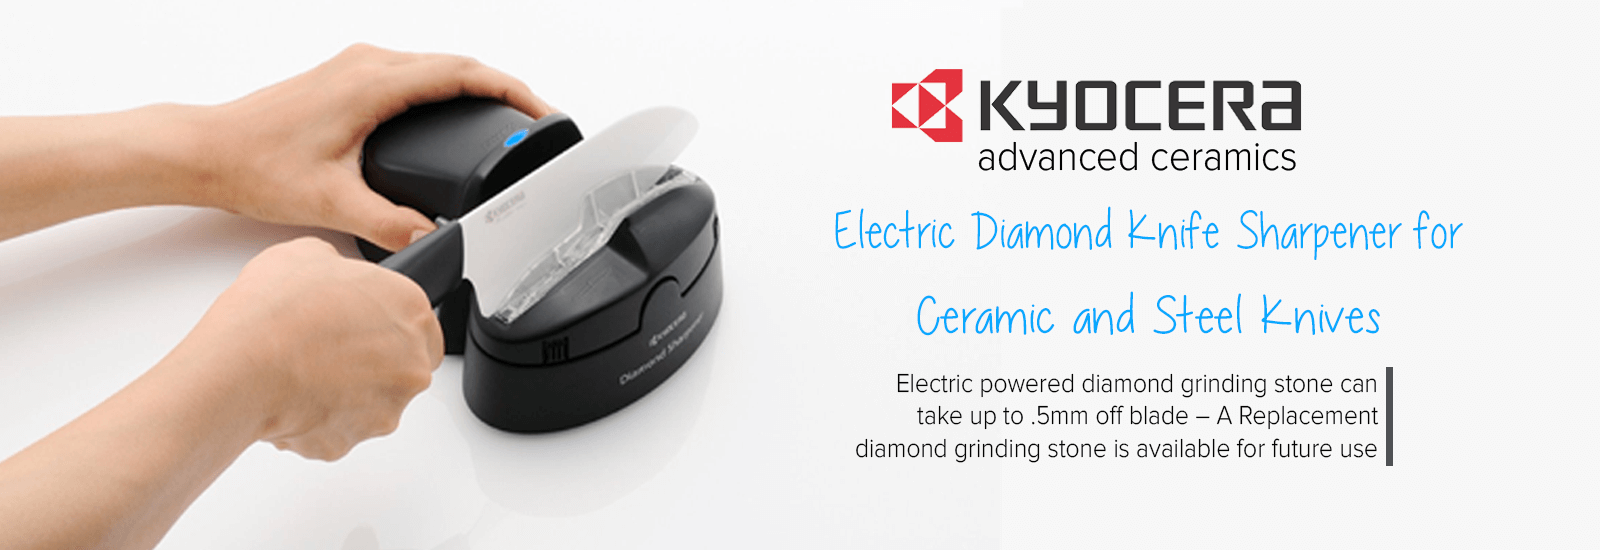 kyocera Electric Diamond Sharpener